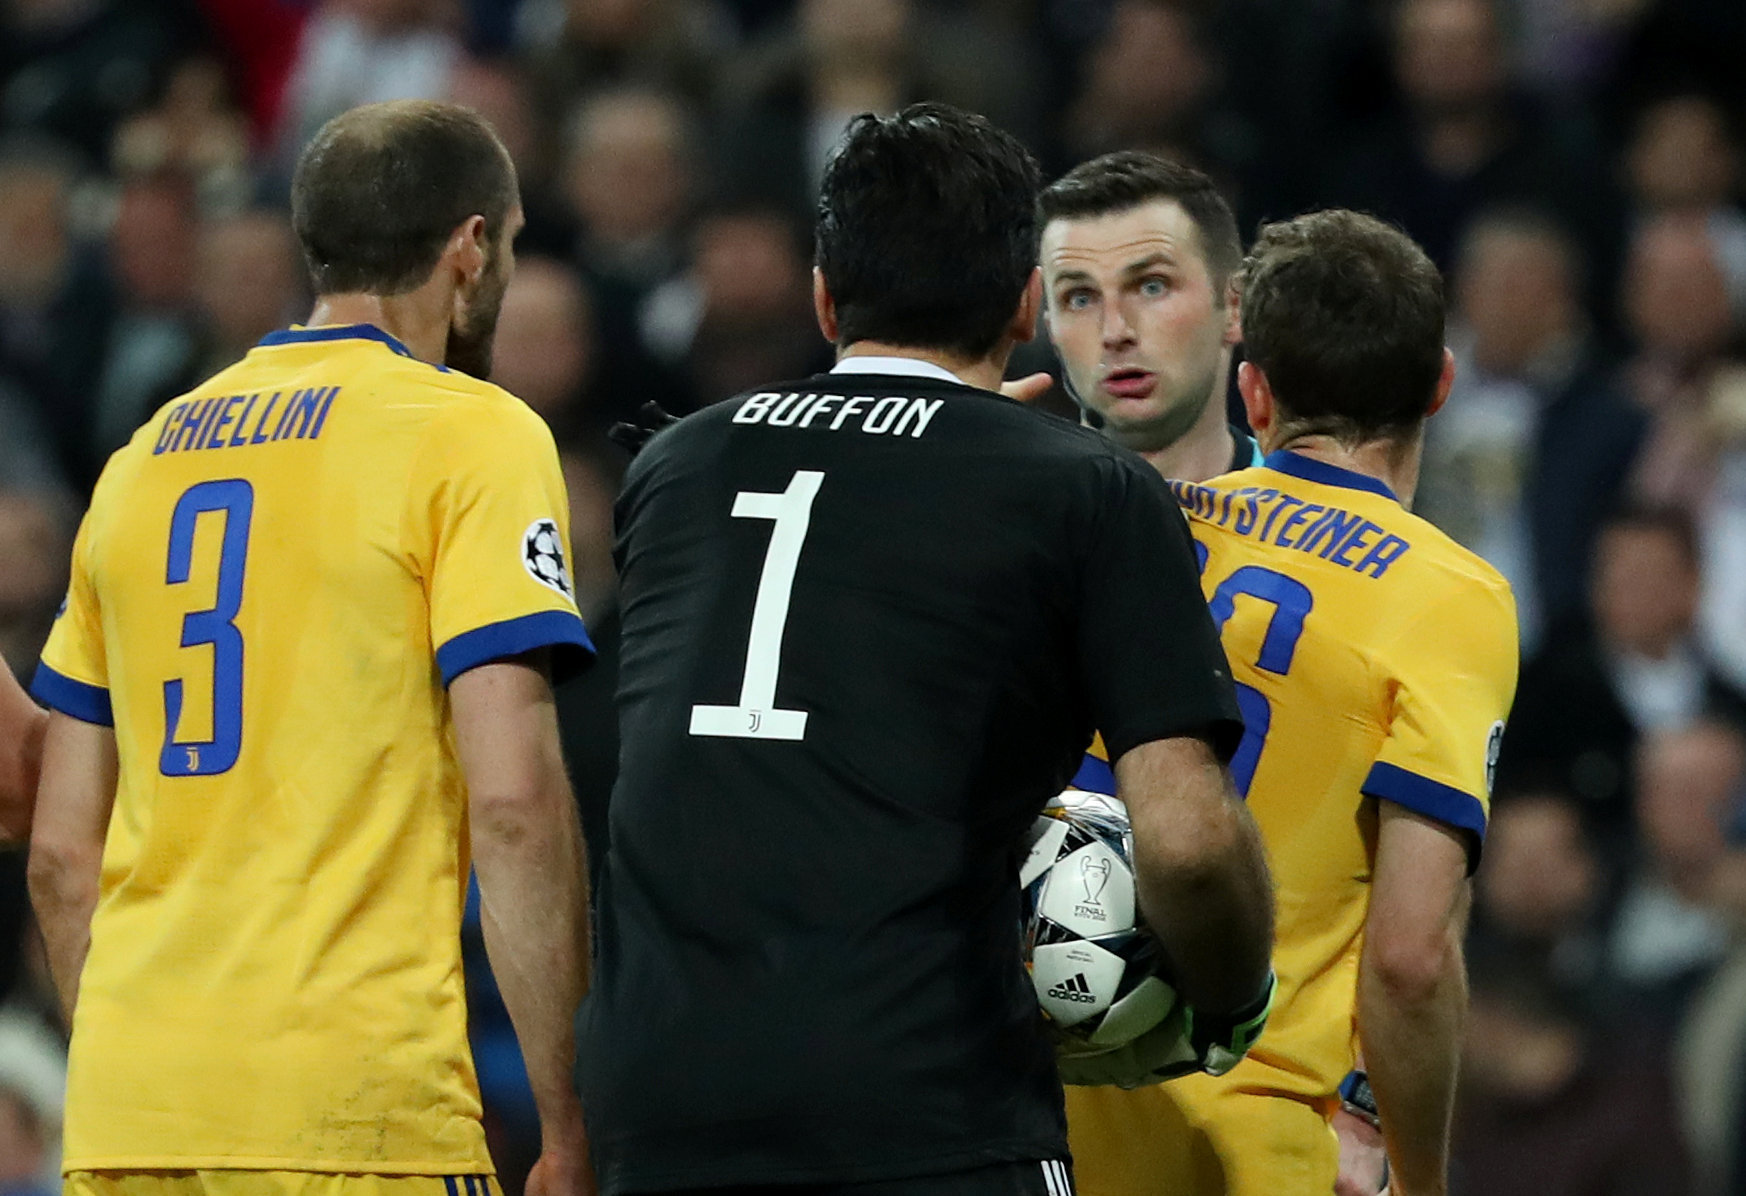 Juventus' Gianluigi Buffon remonstrates with referee Michael Oliver after being sent off. File photo